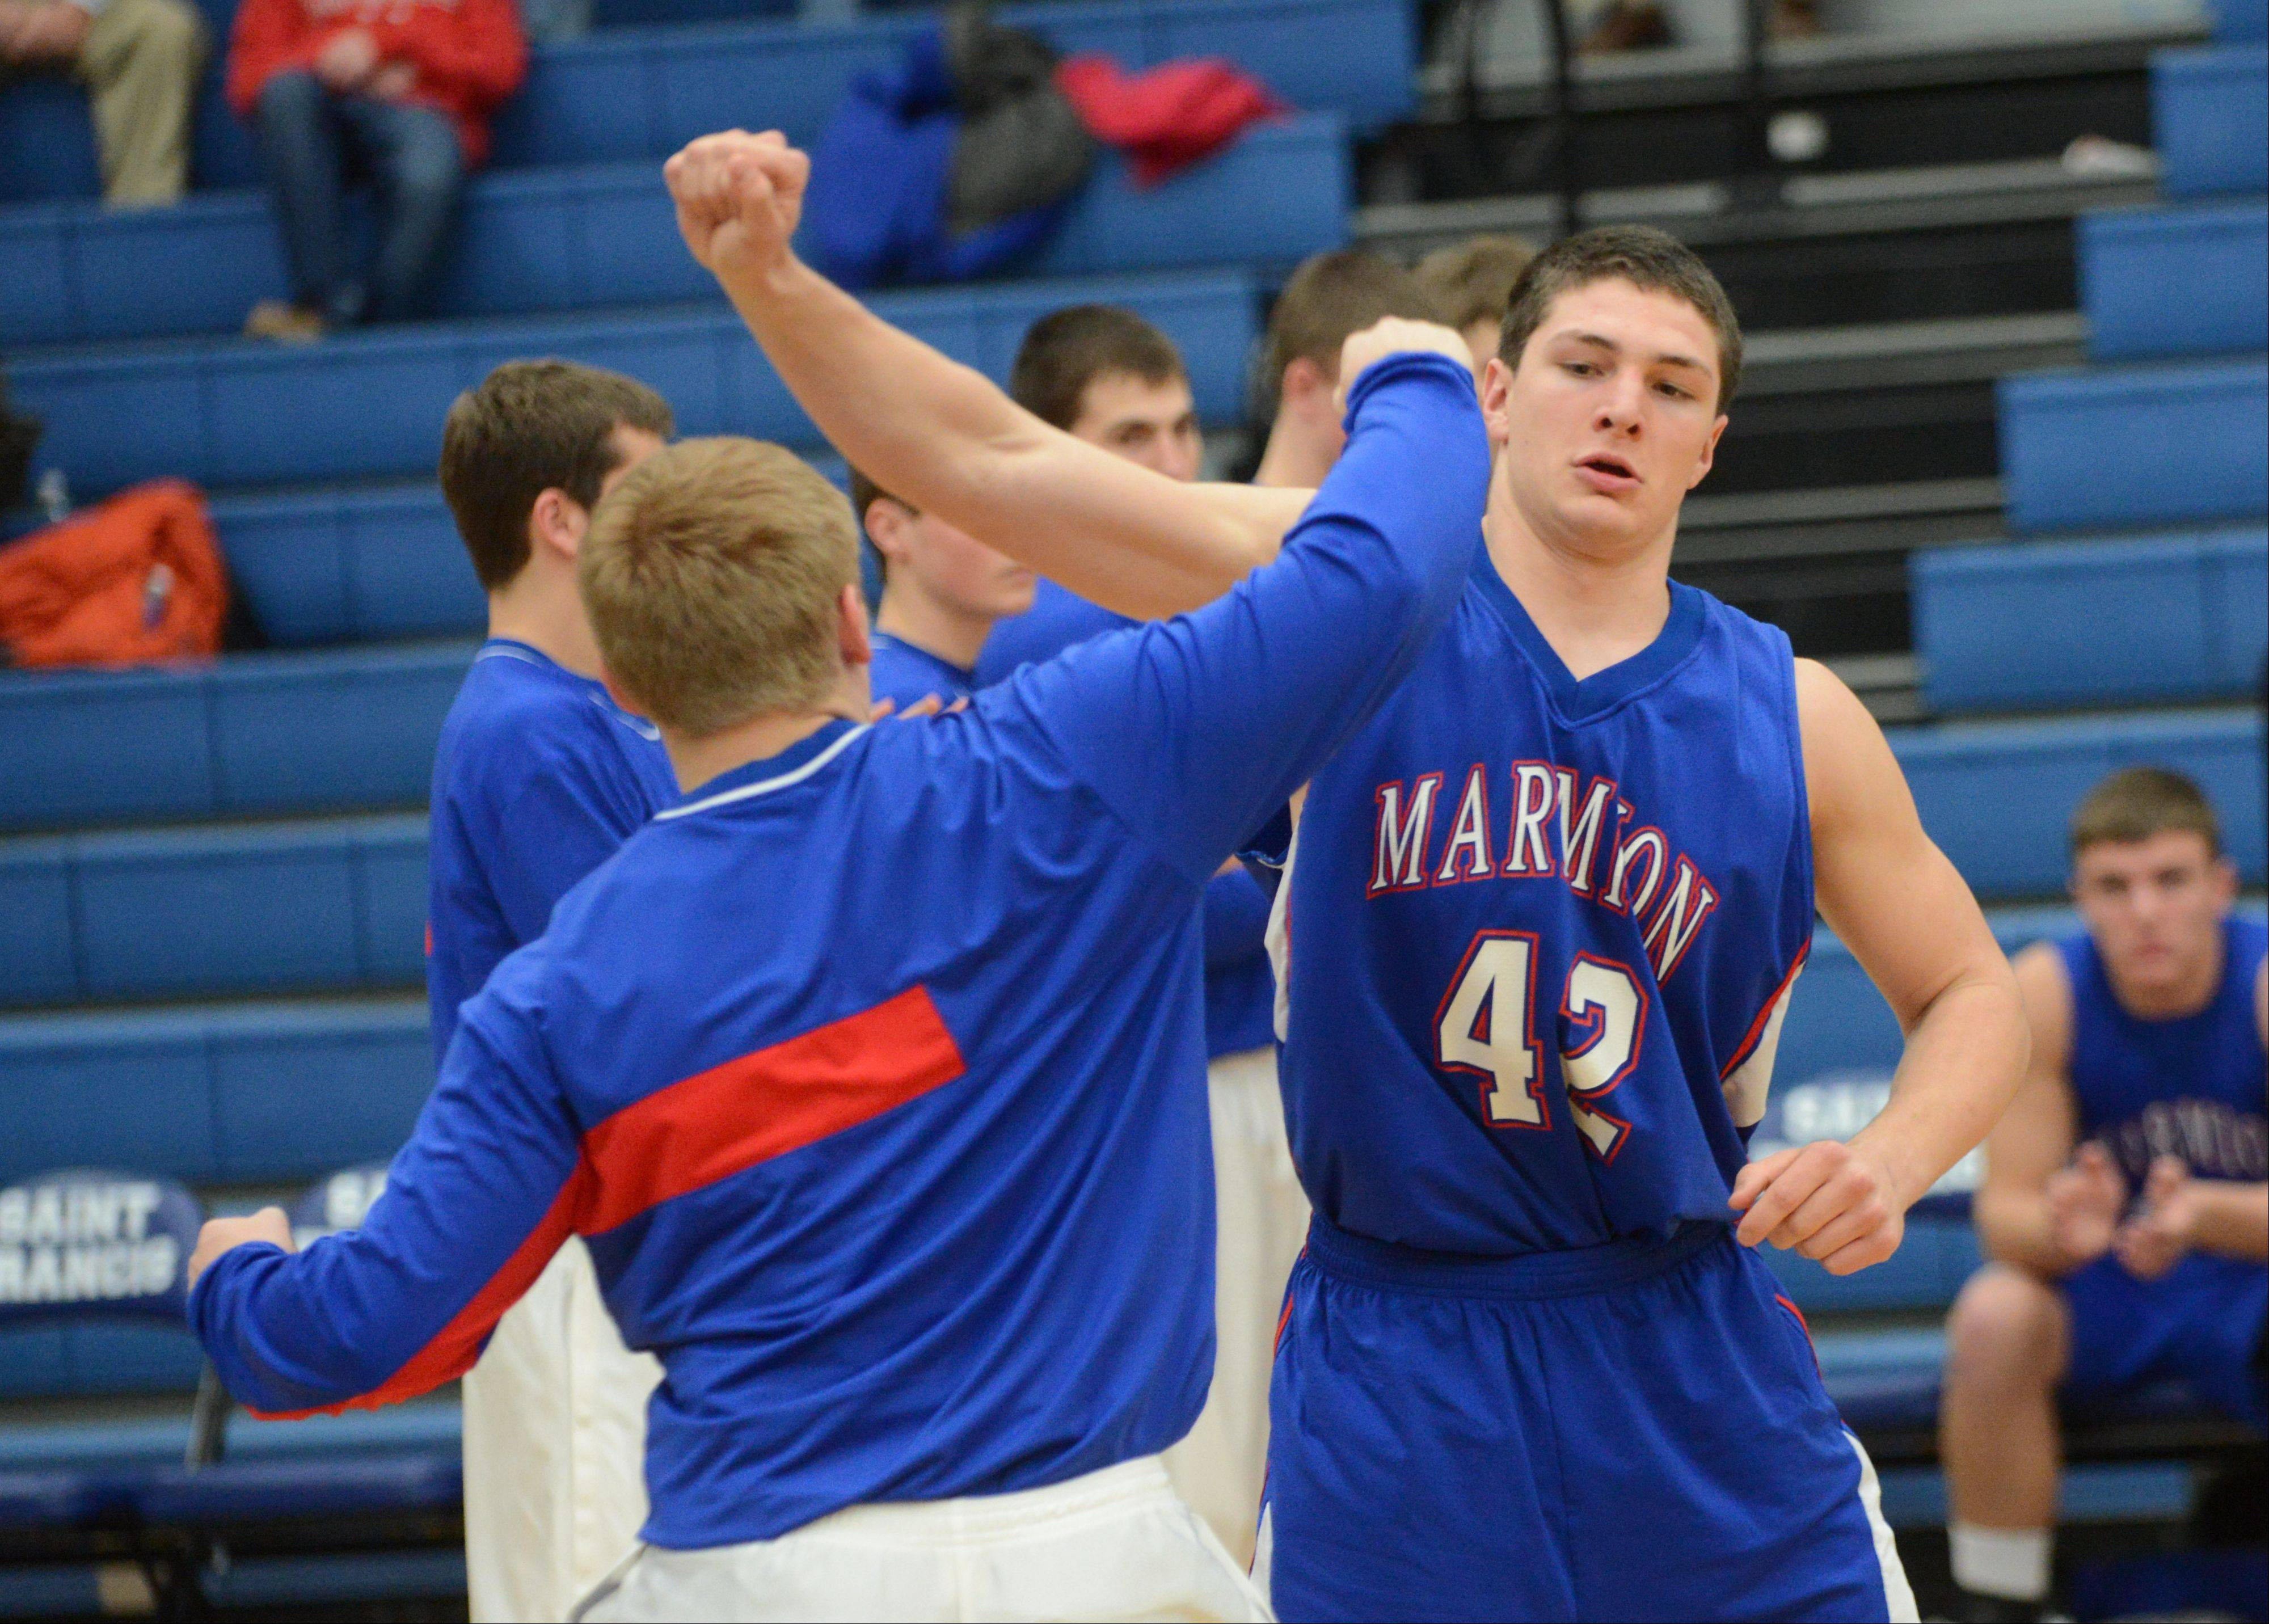 Images: Marmion vs. St. Francis, boys basketball